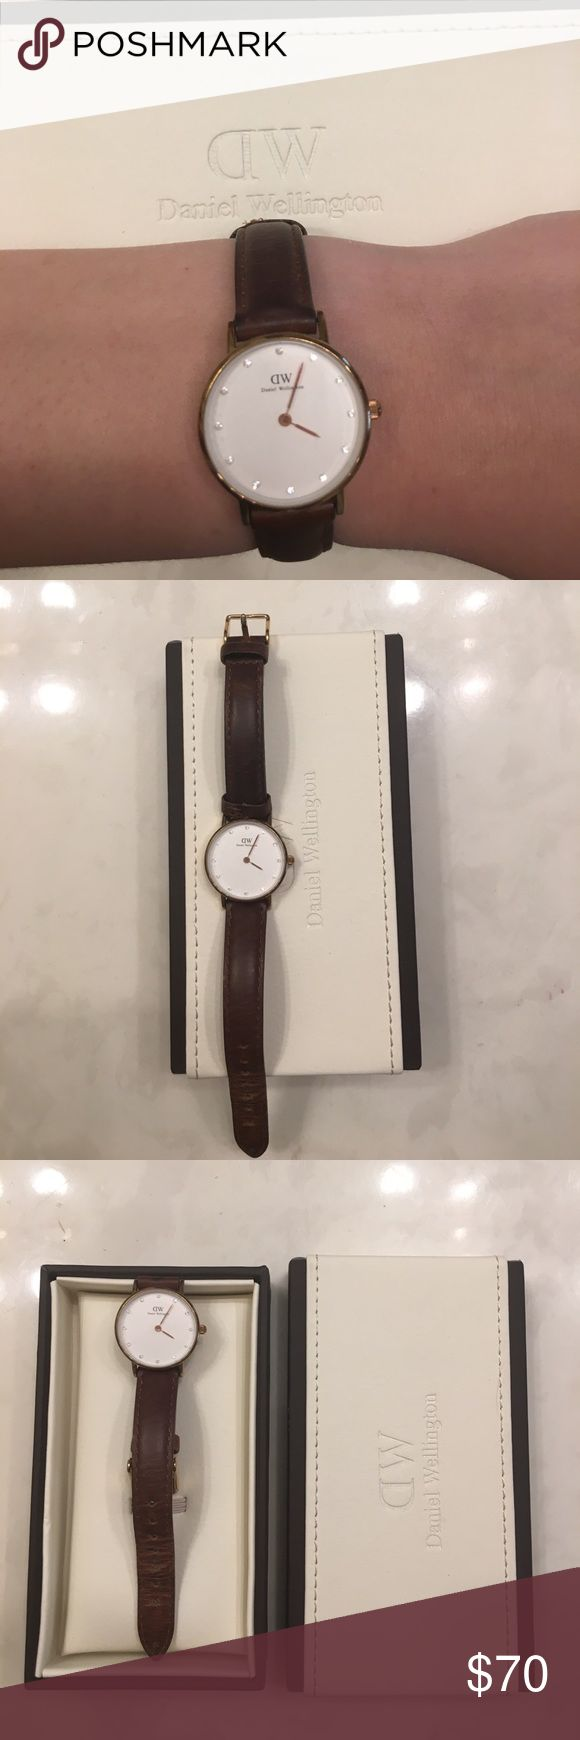 "Daniel Wellington Watch Daniel Wellington ""classy St. Mawes"" Brown leather women's watch. Small and dainty. Has quartz mineral crystals in place of numbers. Mild sign of wear (worn about a dozen times). Comes with box. Price is firm. No trades. Daniel Wellington Accessories Watches"